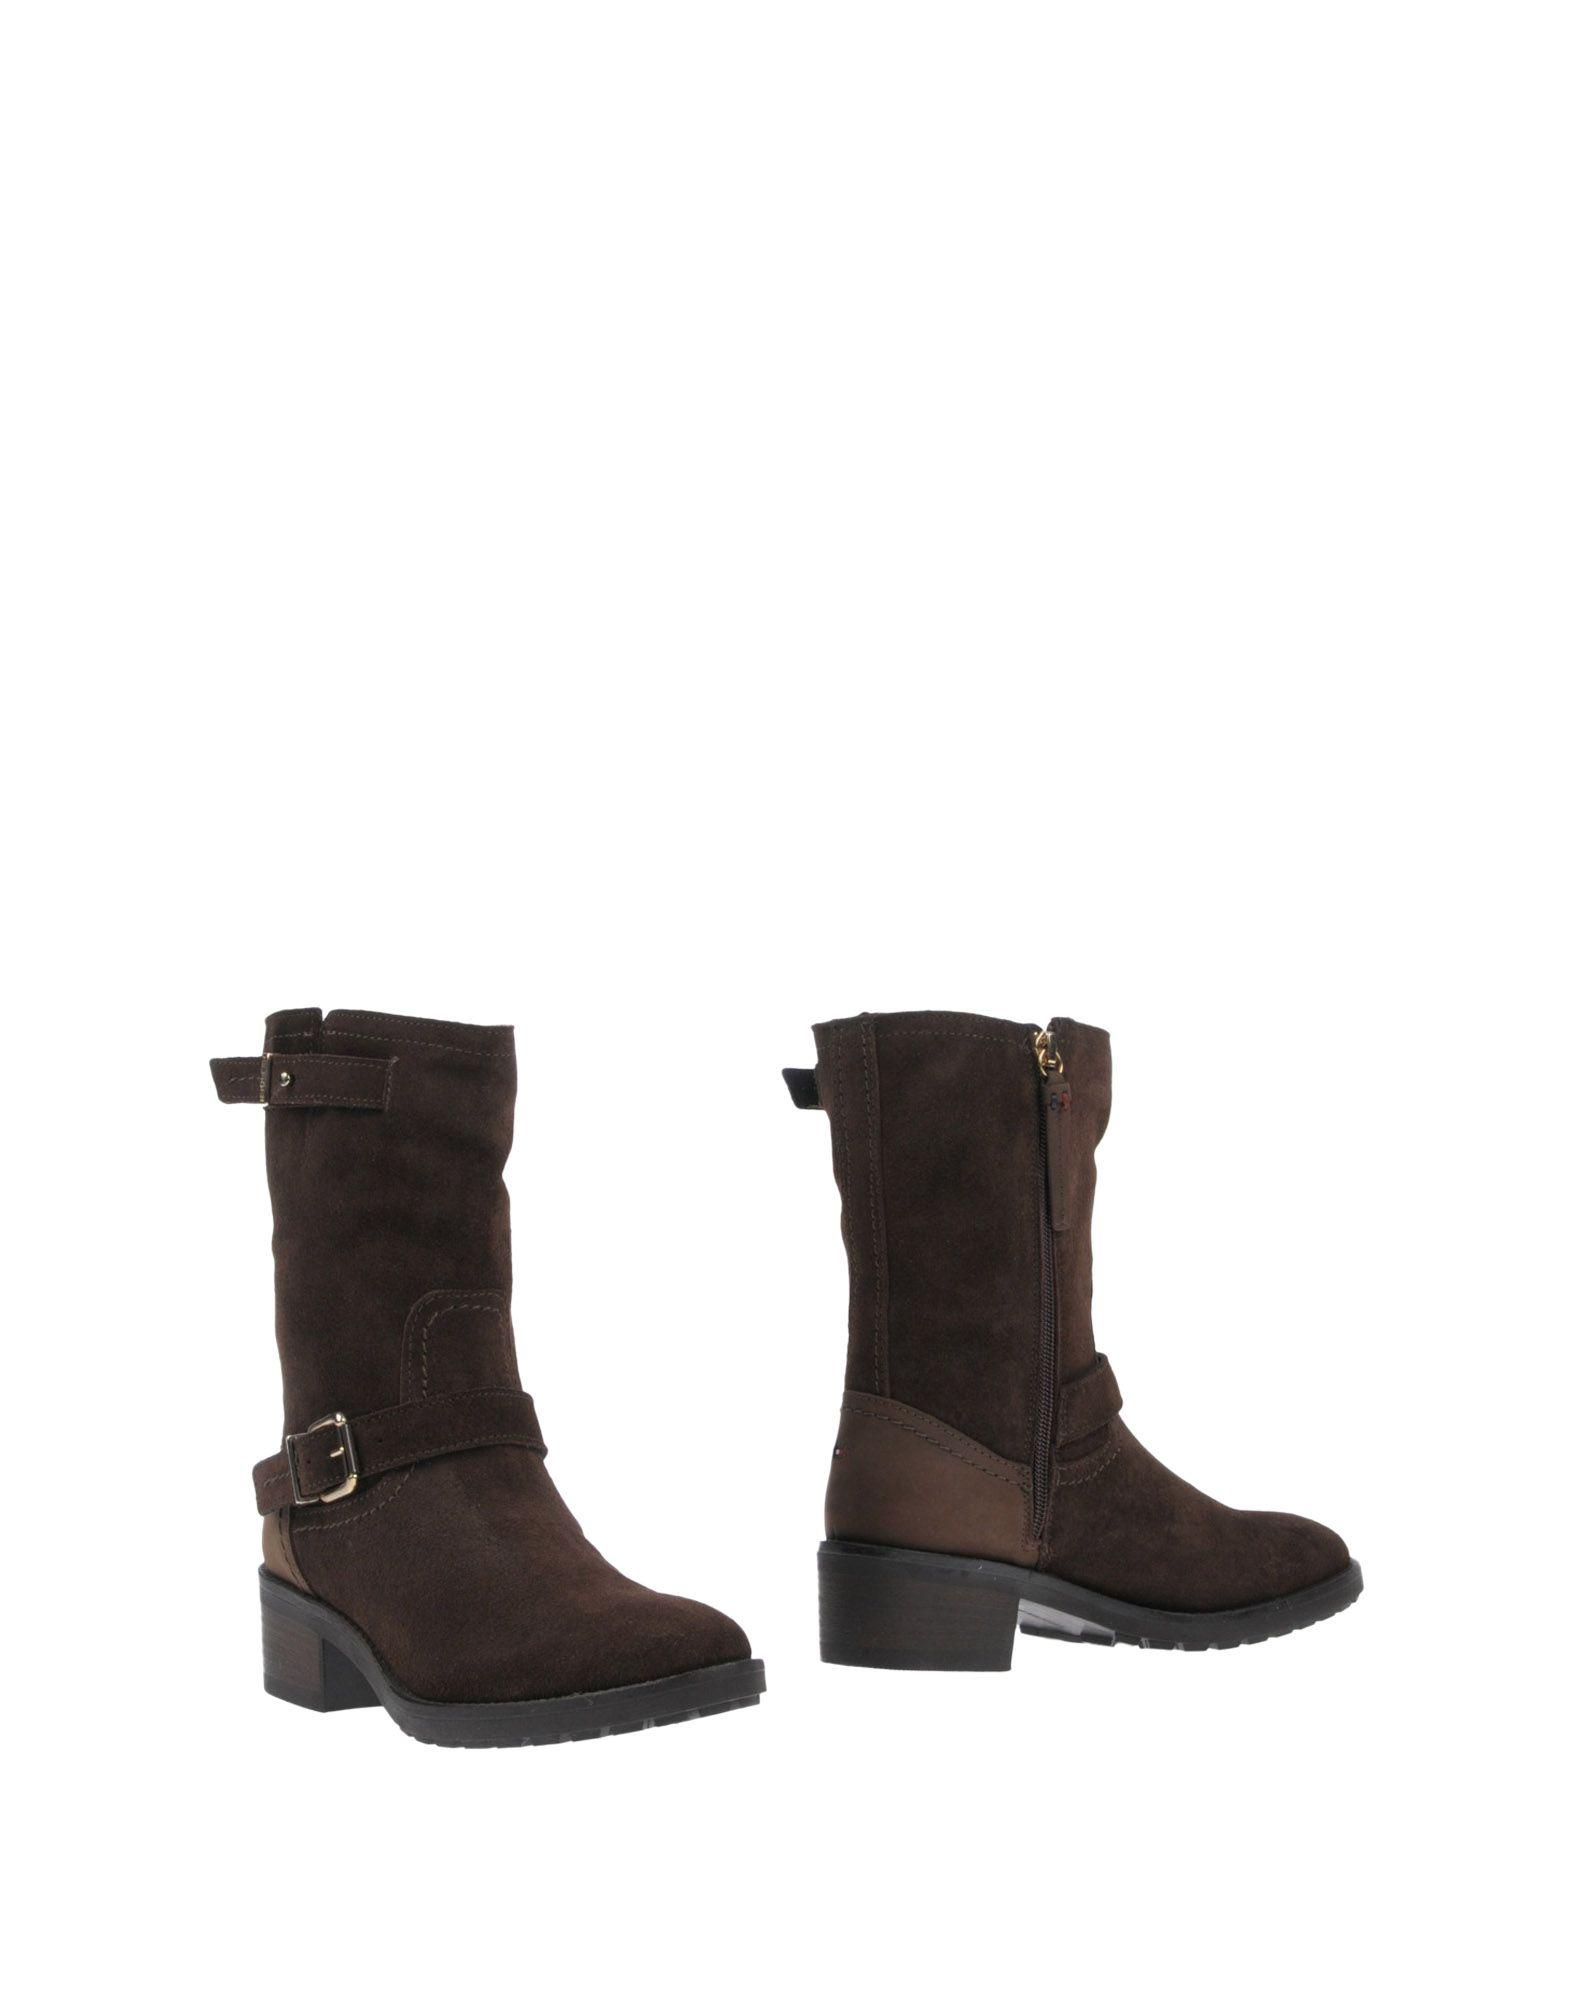 Tommy Hilfiger Ankle Boots In Dark Brown